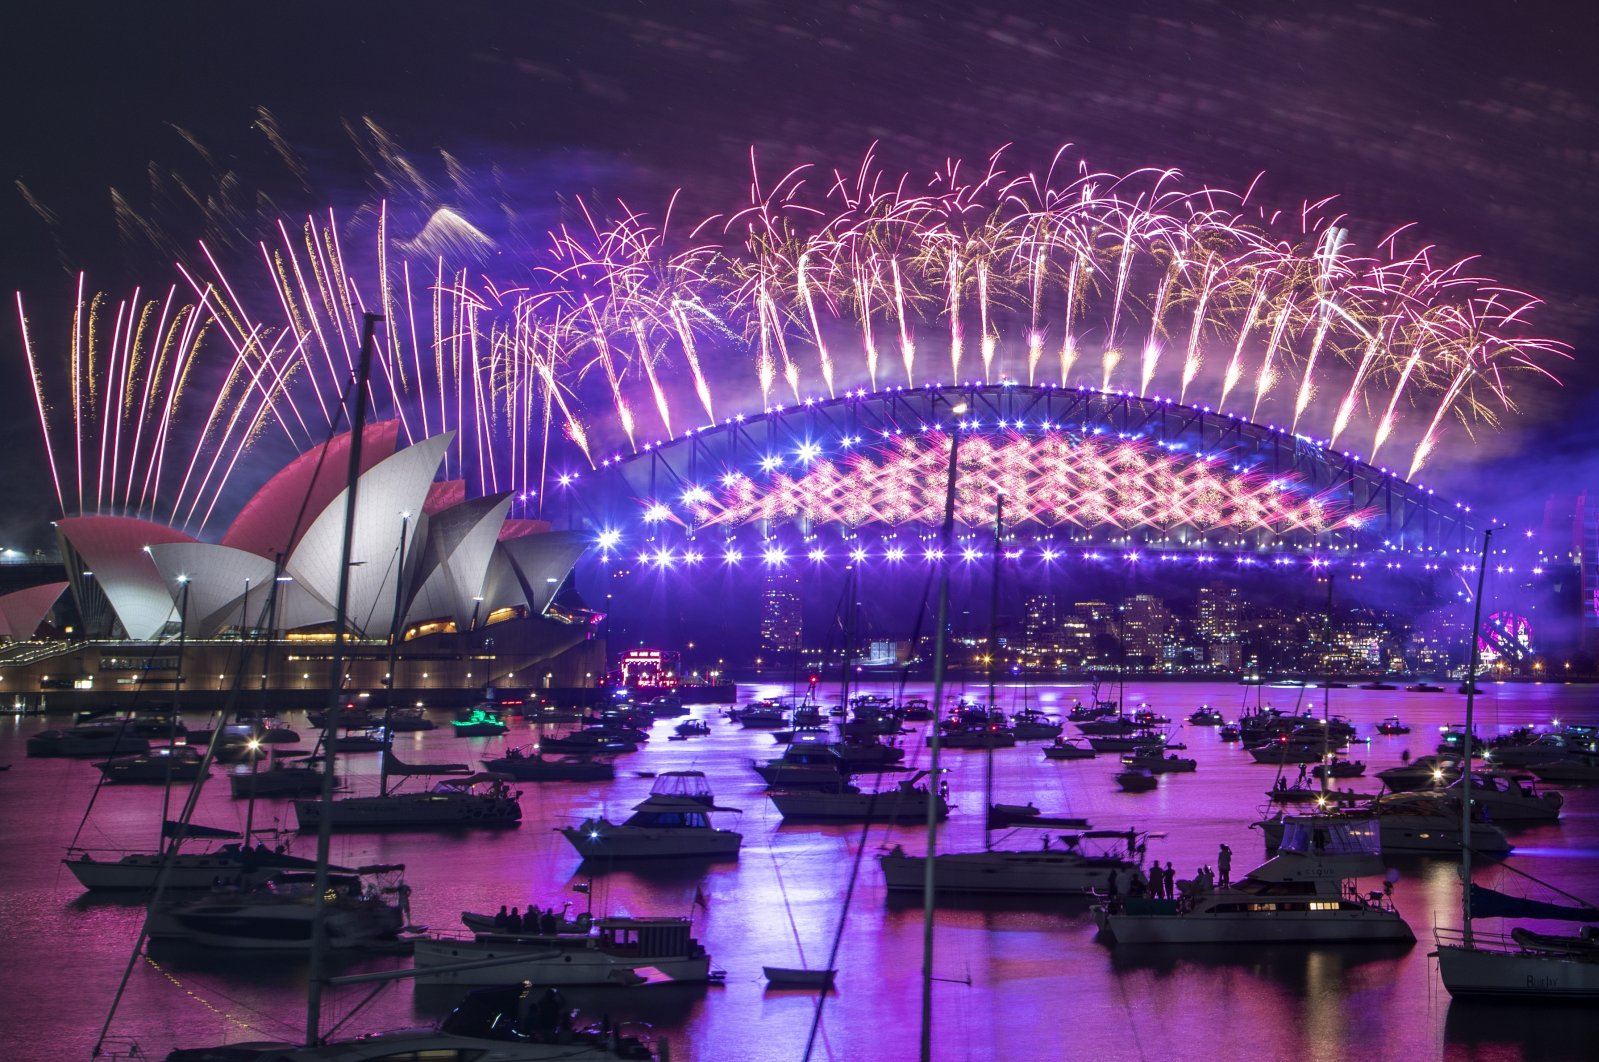 Fireworks explode over the Sydney Opera House and Harbour Bridge as New Year's celebrations begin in Sydney, Australia, Dec. 31, 2020. (AP Photo)